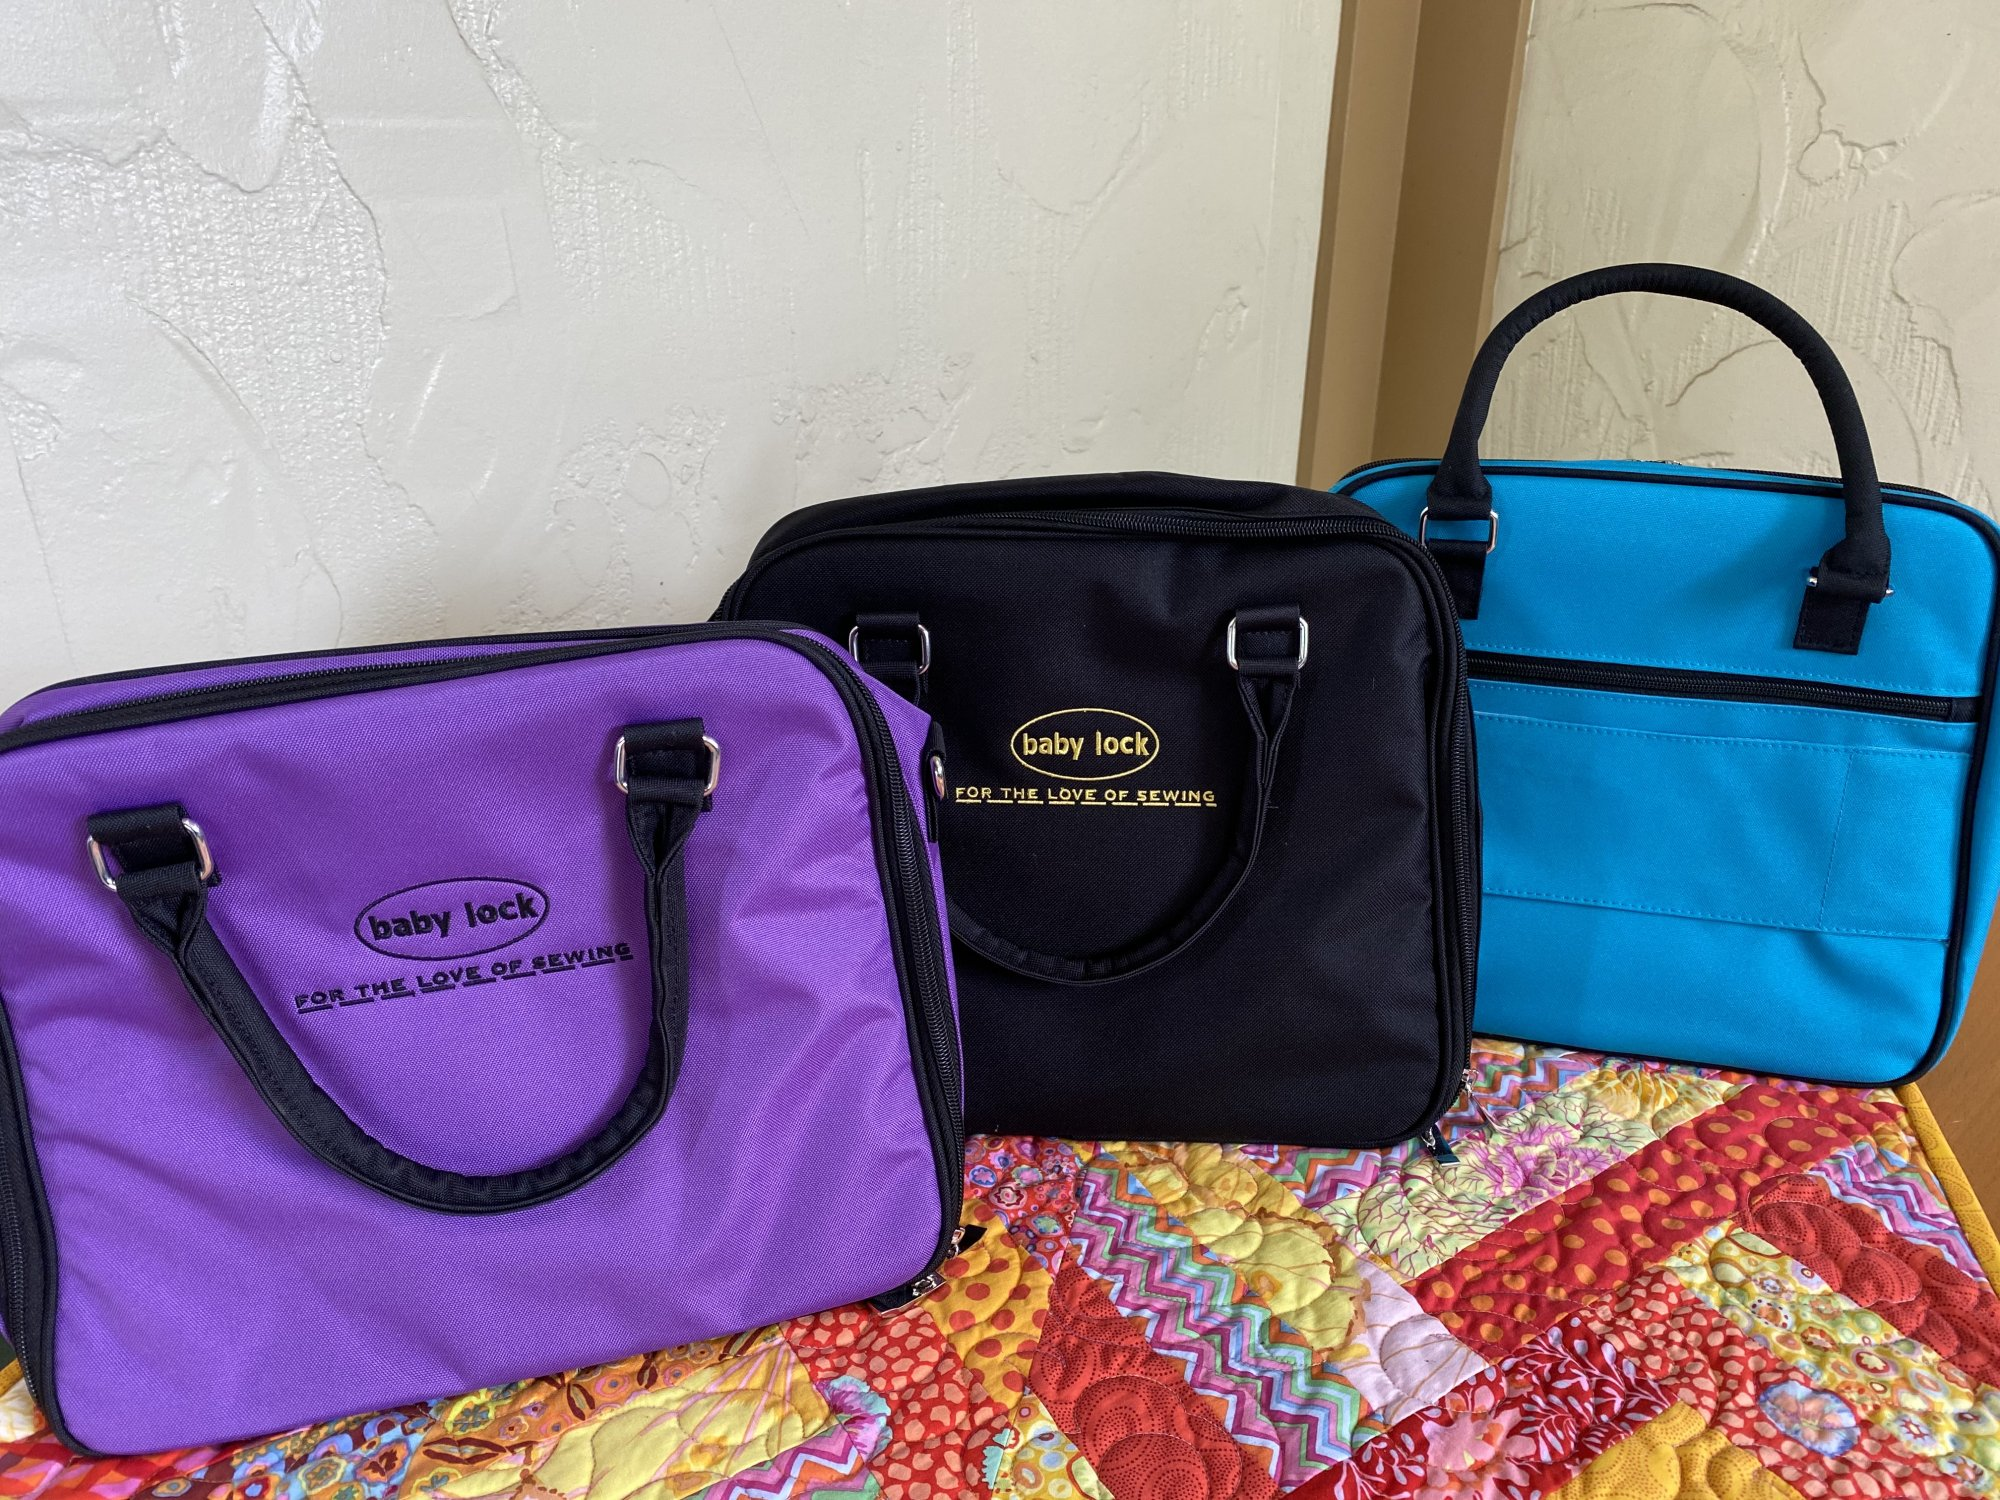 TEAL Babylock Foot Accessory Bag - BAG ONLY